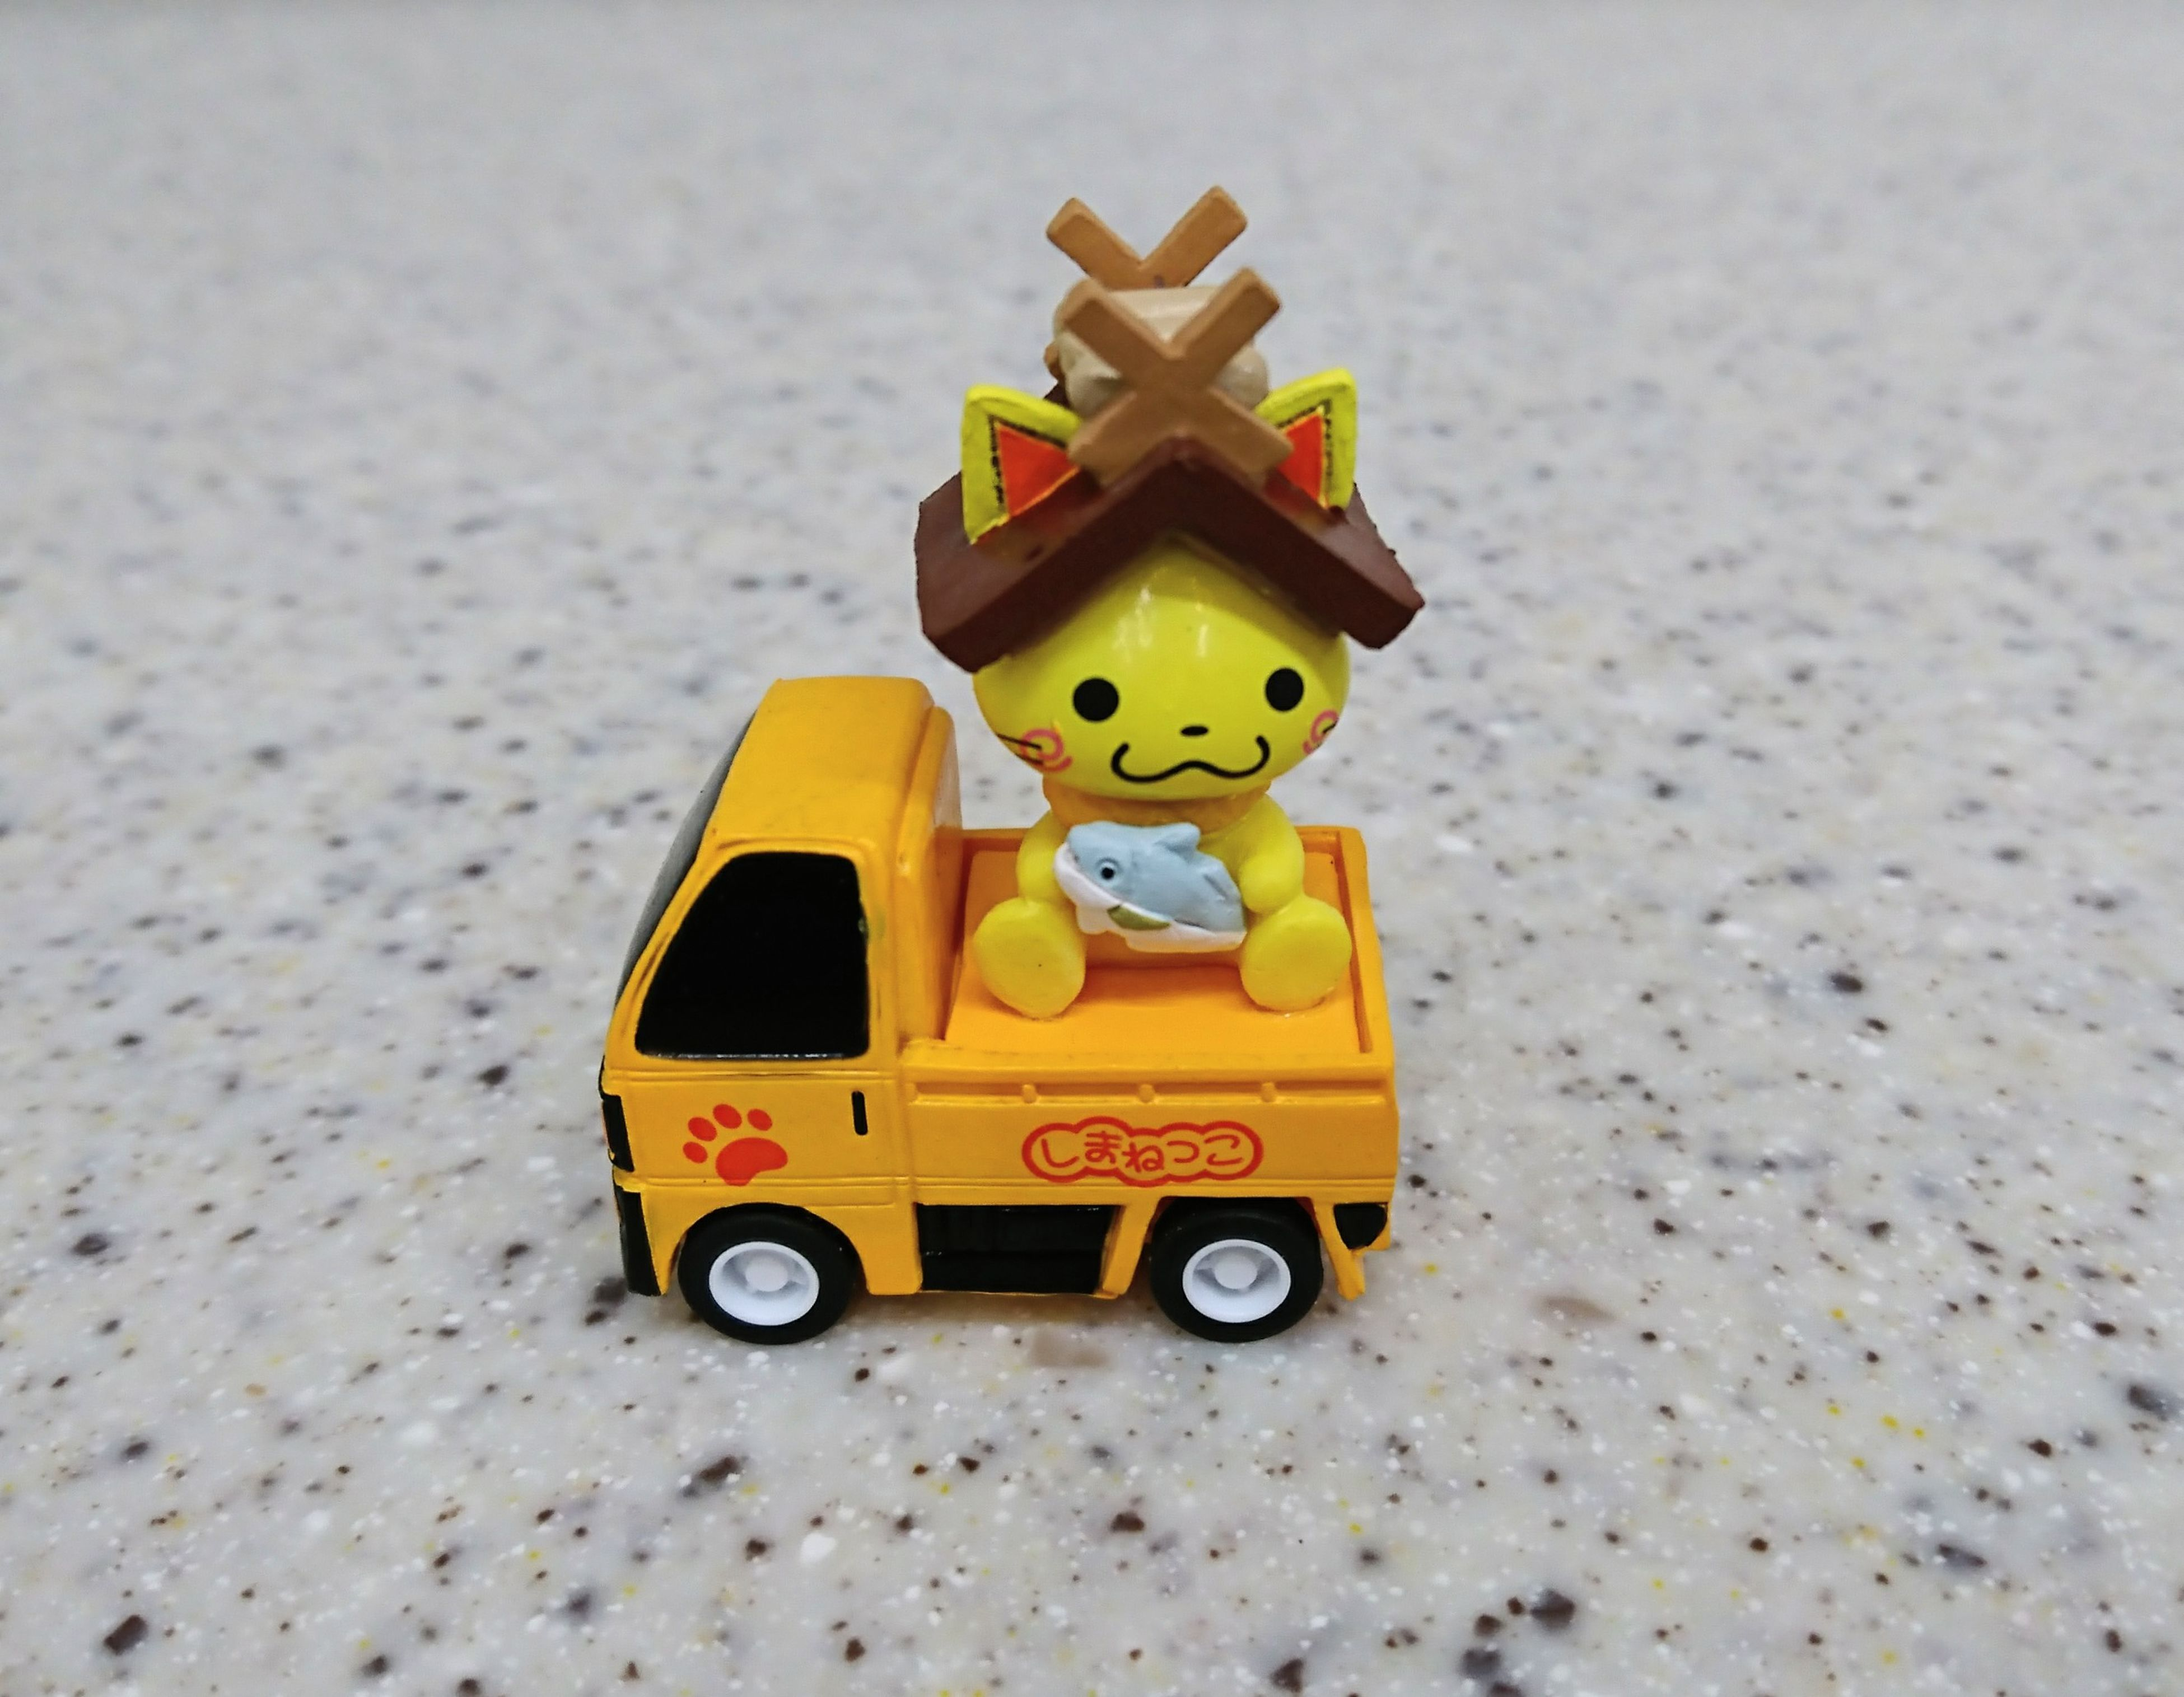 toy, childhood, toy car, land vehicle, multi colored, transportation, sand, car, no people, figurine, stationary, yellow, day, model - object, outdoors, close-up, sand pail and shovel